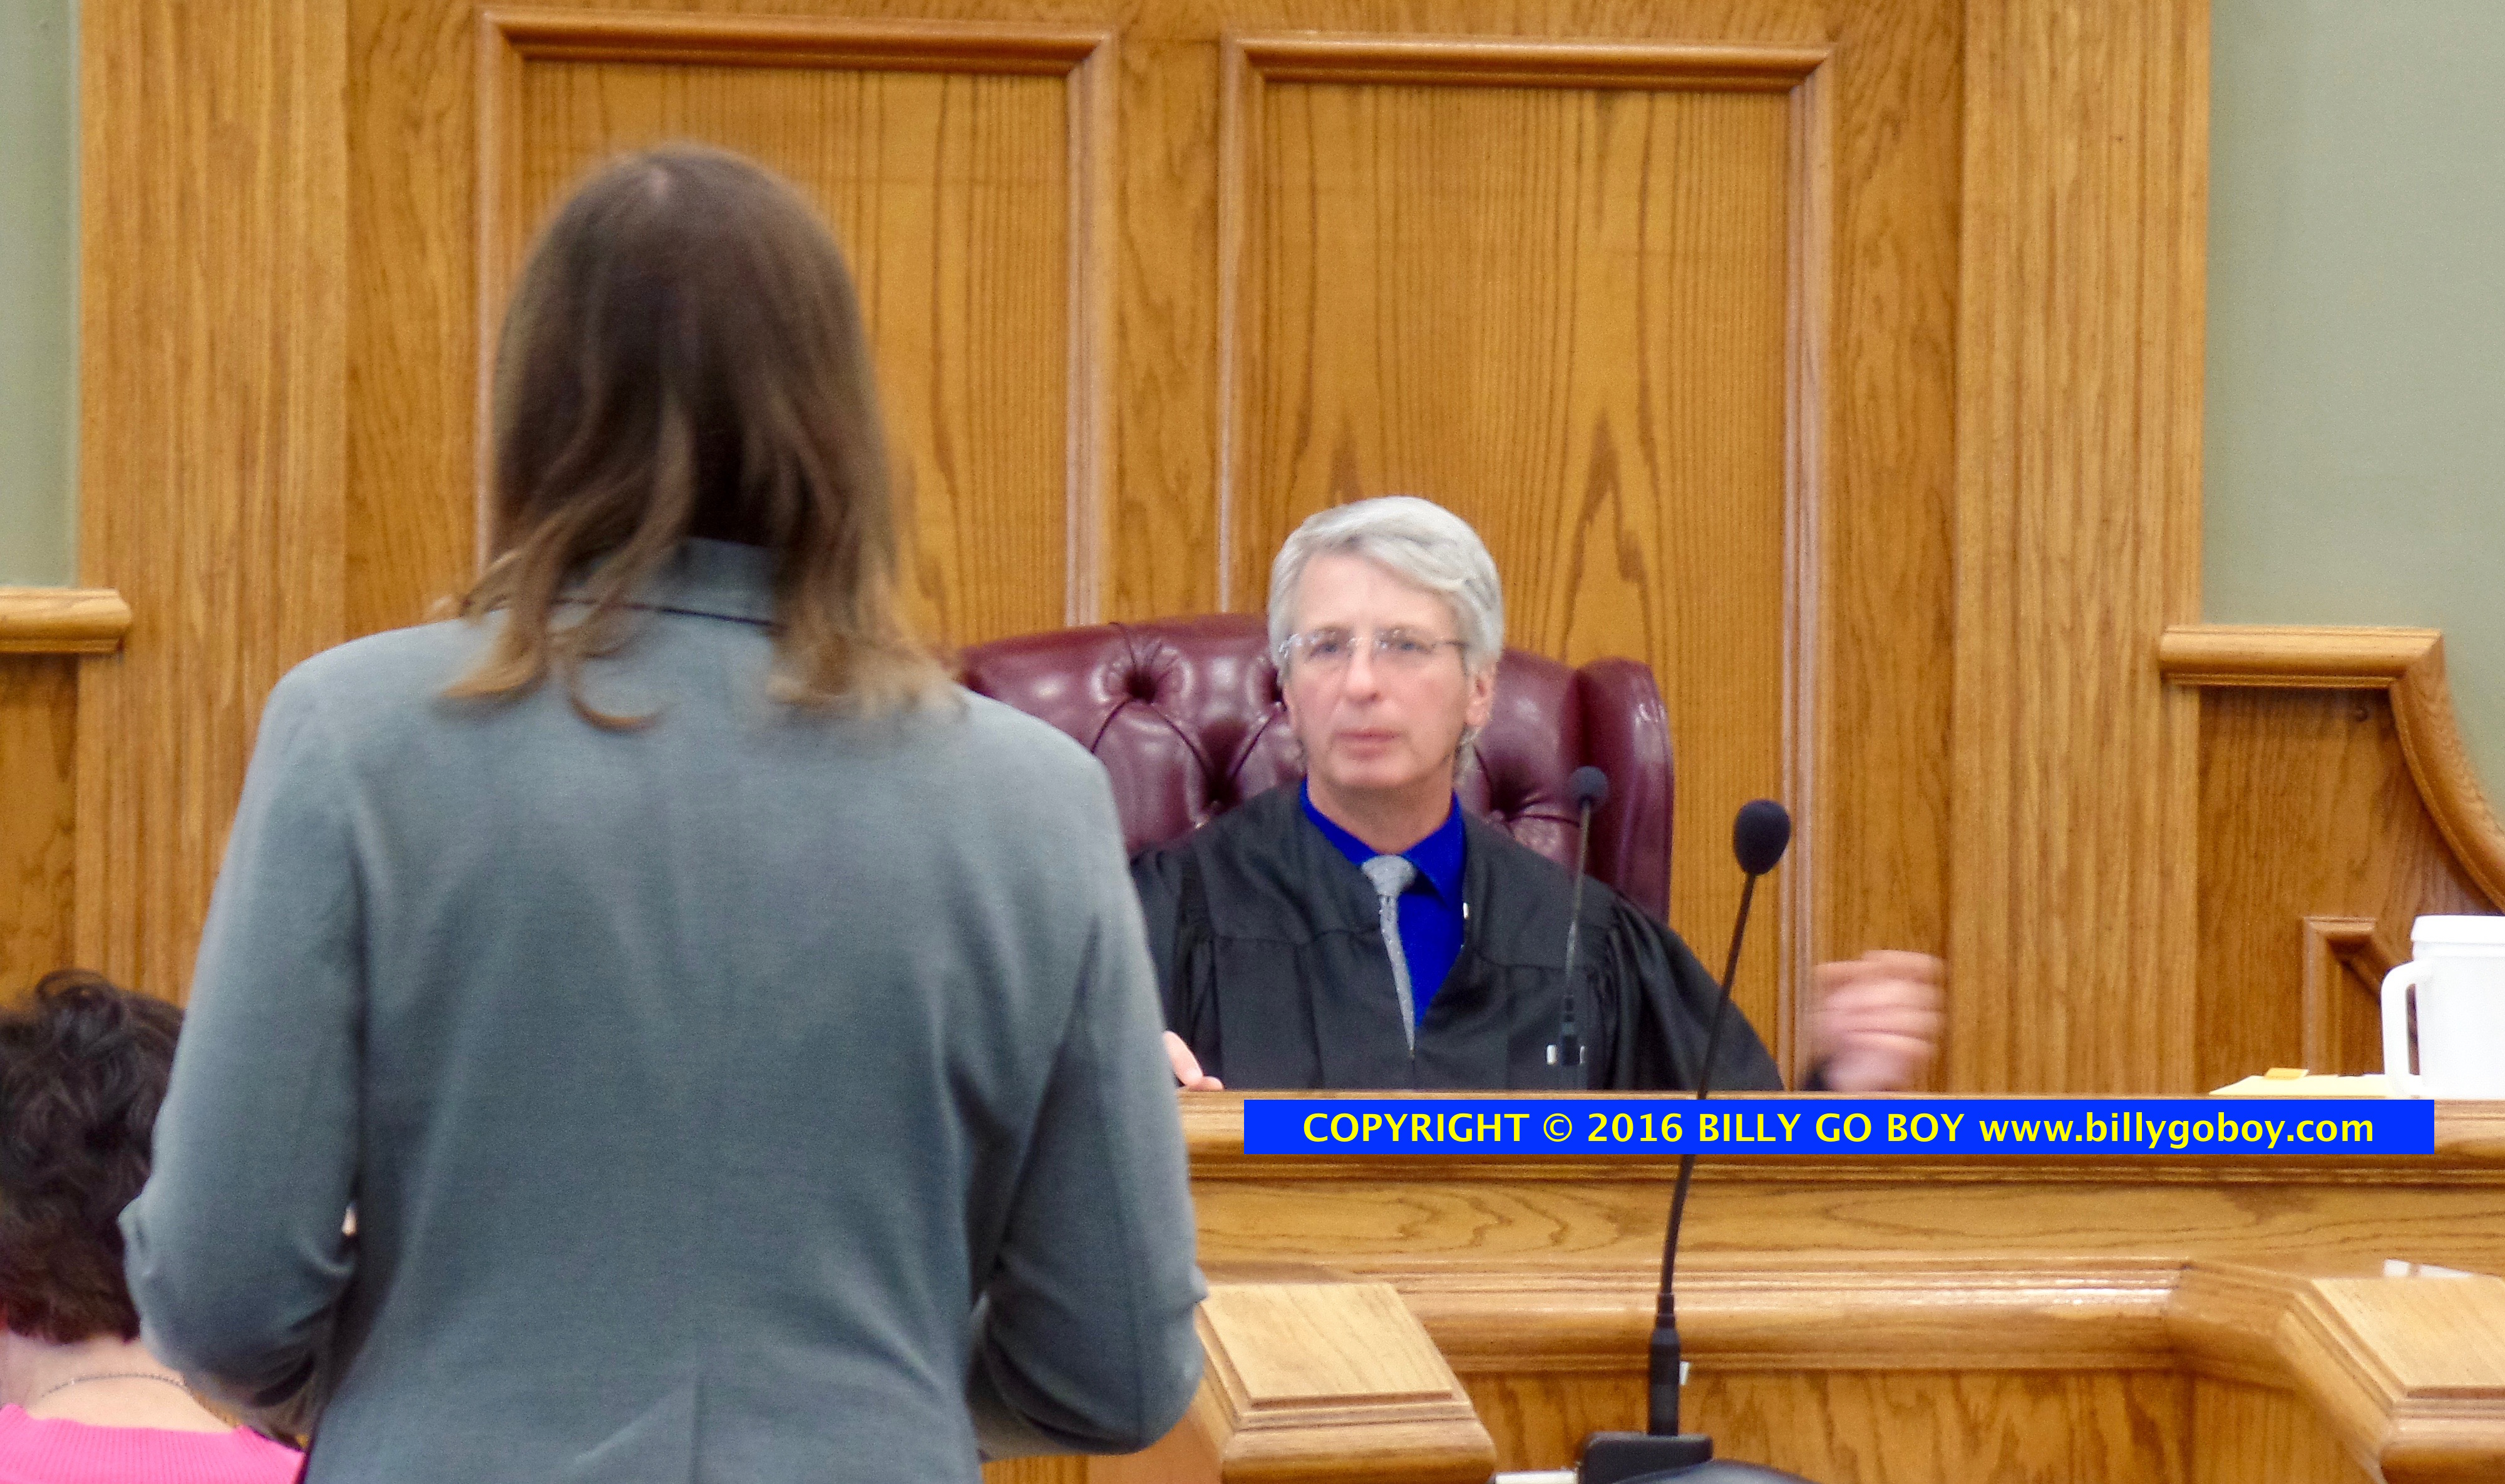 Assistant District Attorney General Karen Walkup making final argument to Circuit Judge Durard.